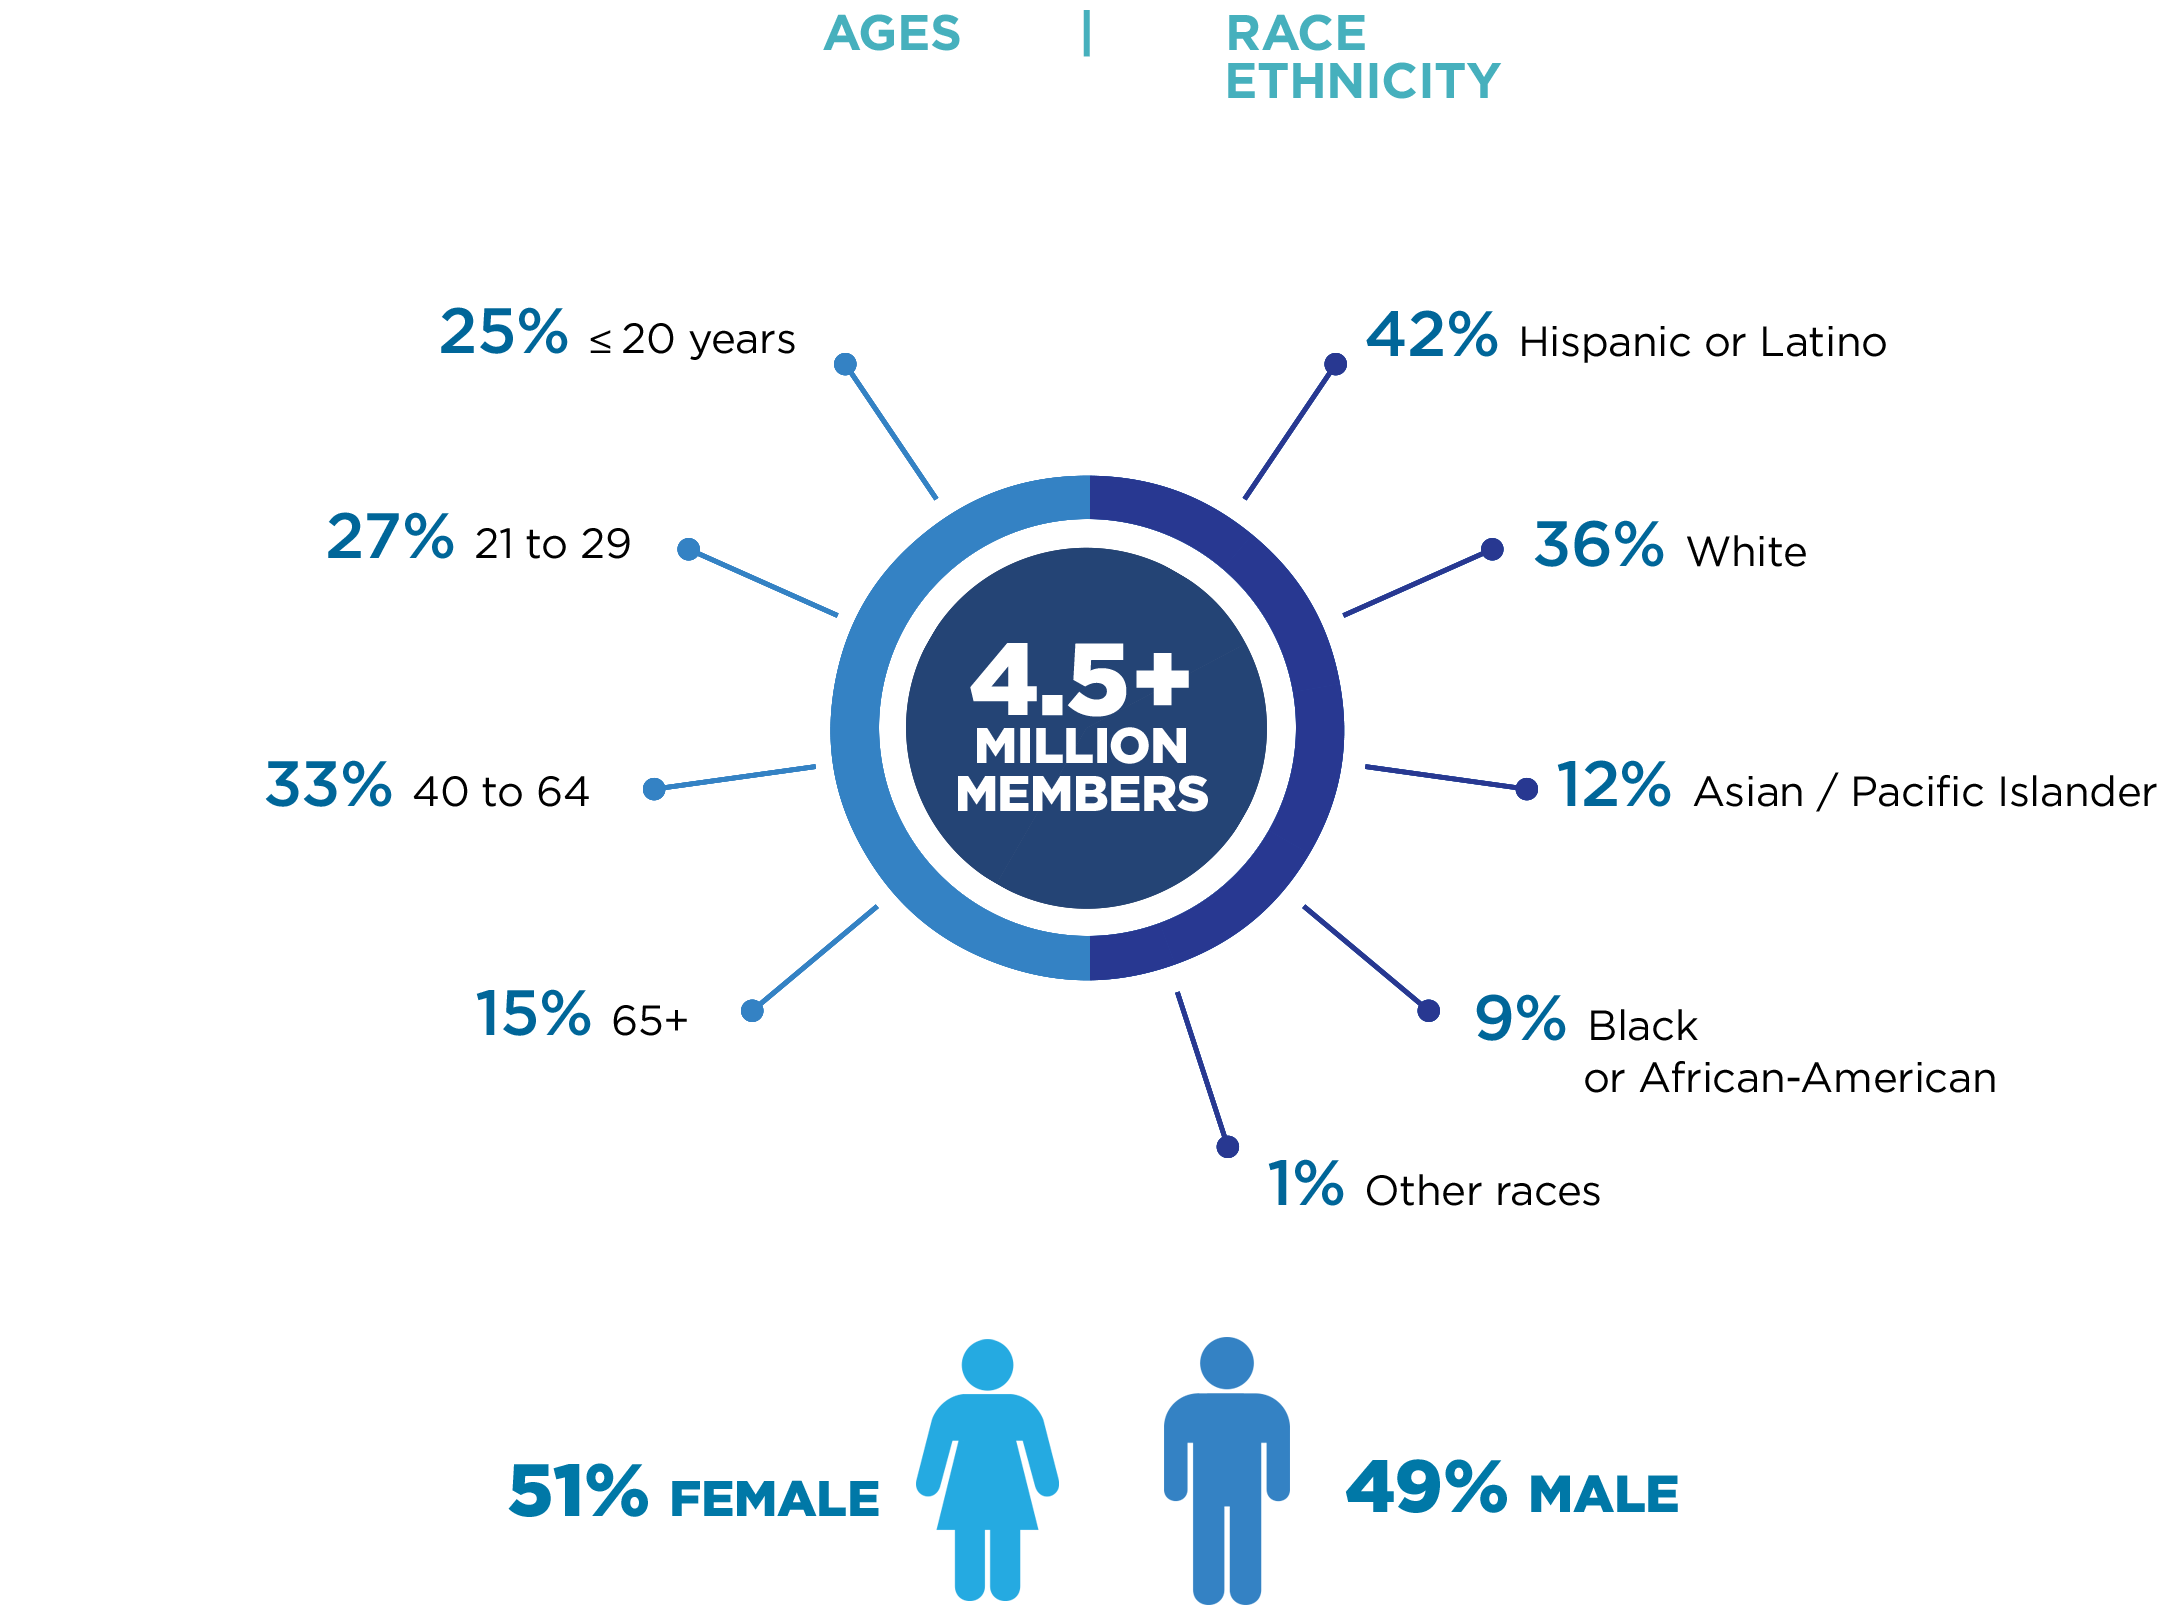 Pie chart showing demographics of Kaiser Permanente Southern California's 4.5+ million members. Includes age, ethicity/race, and sex.